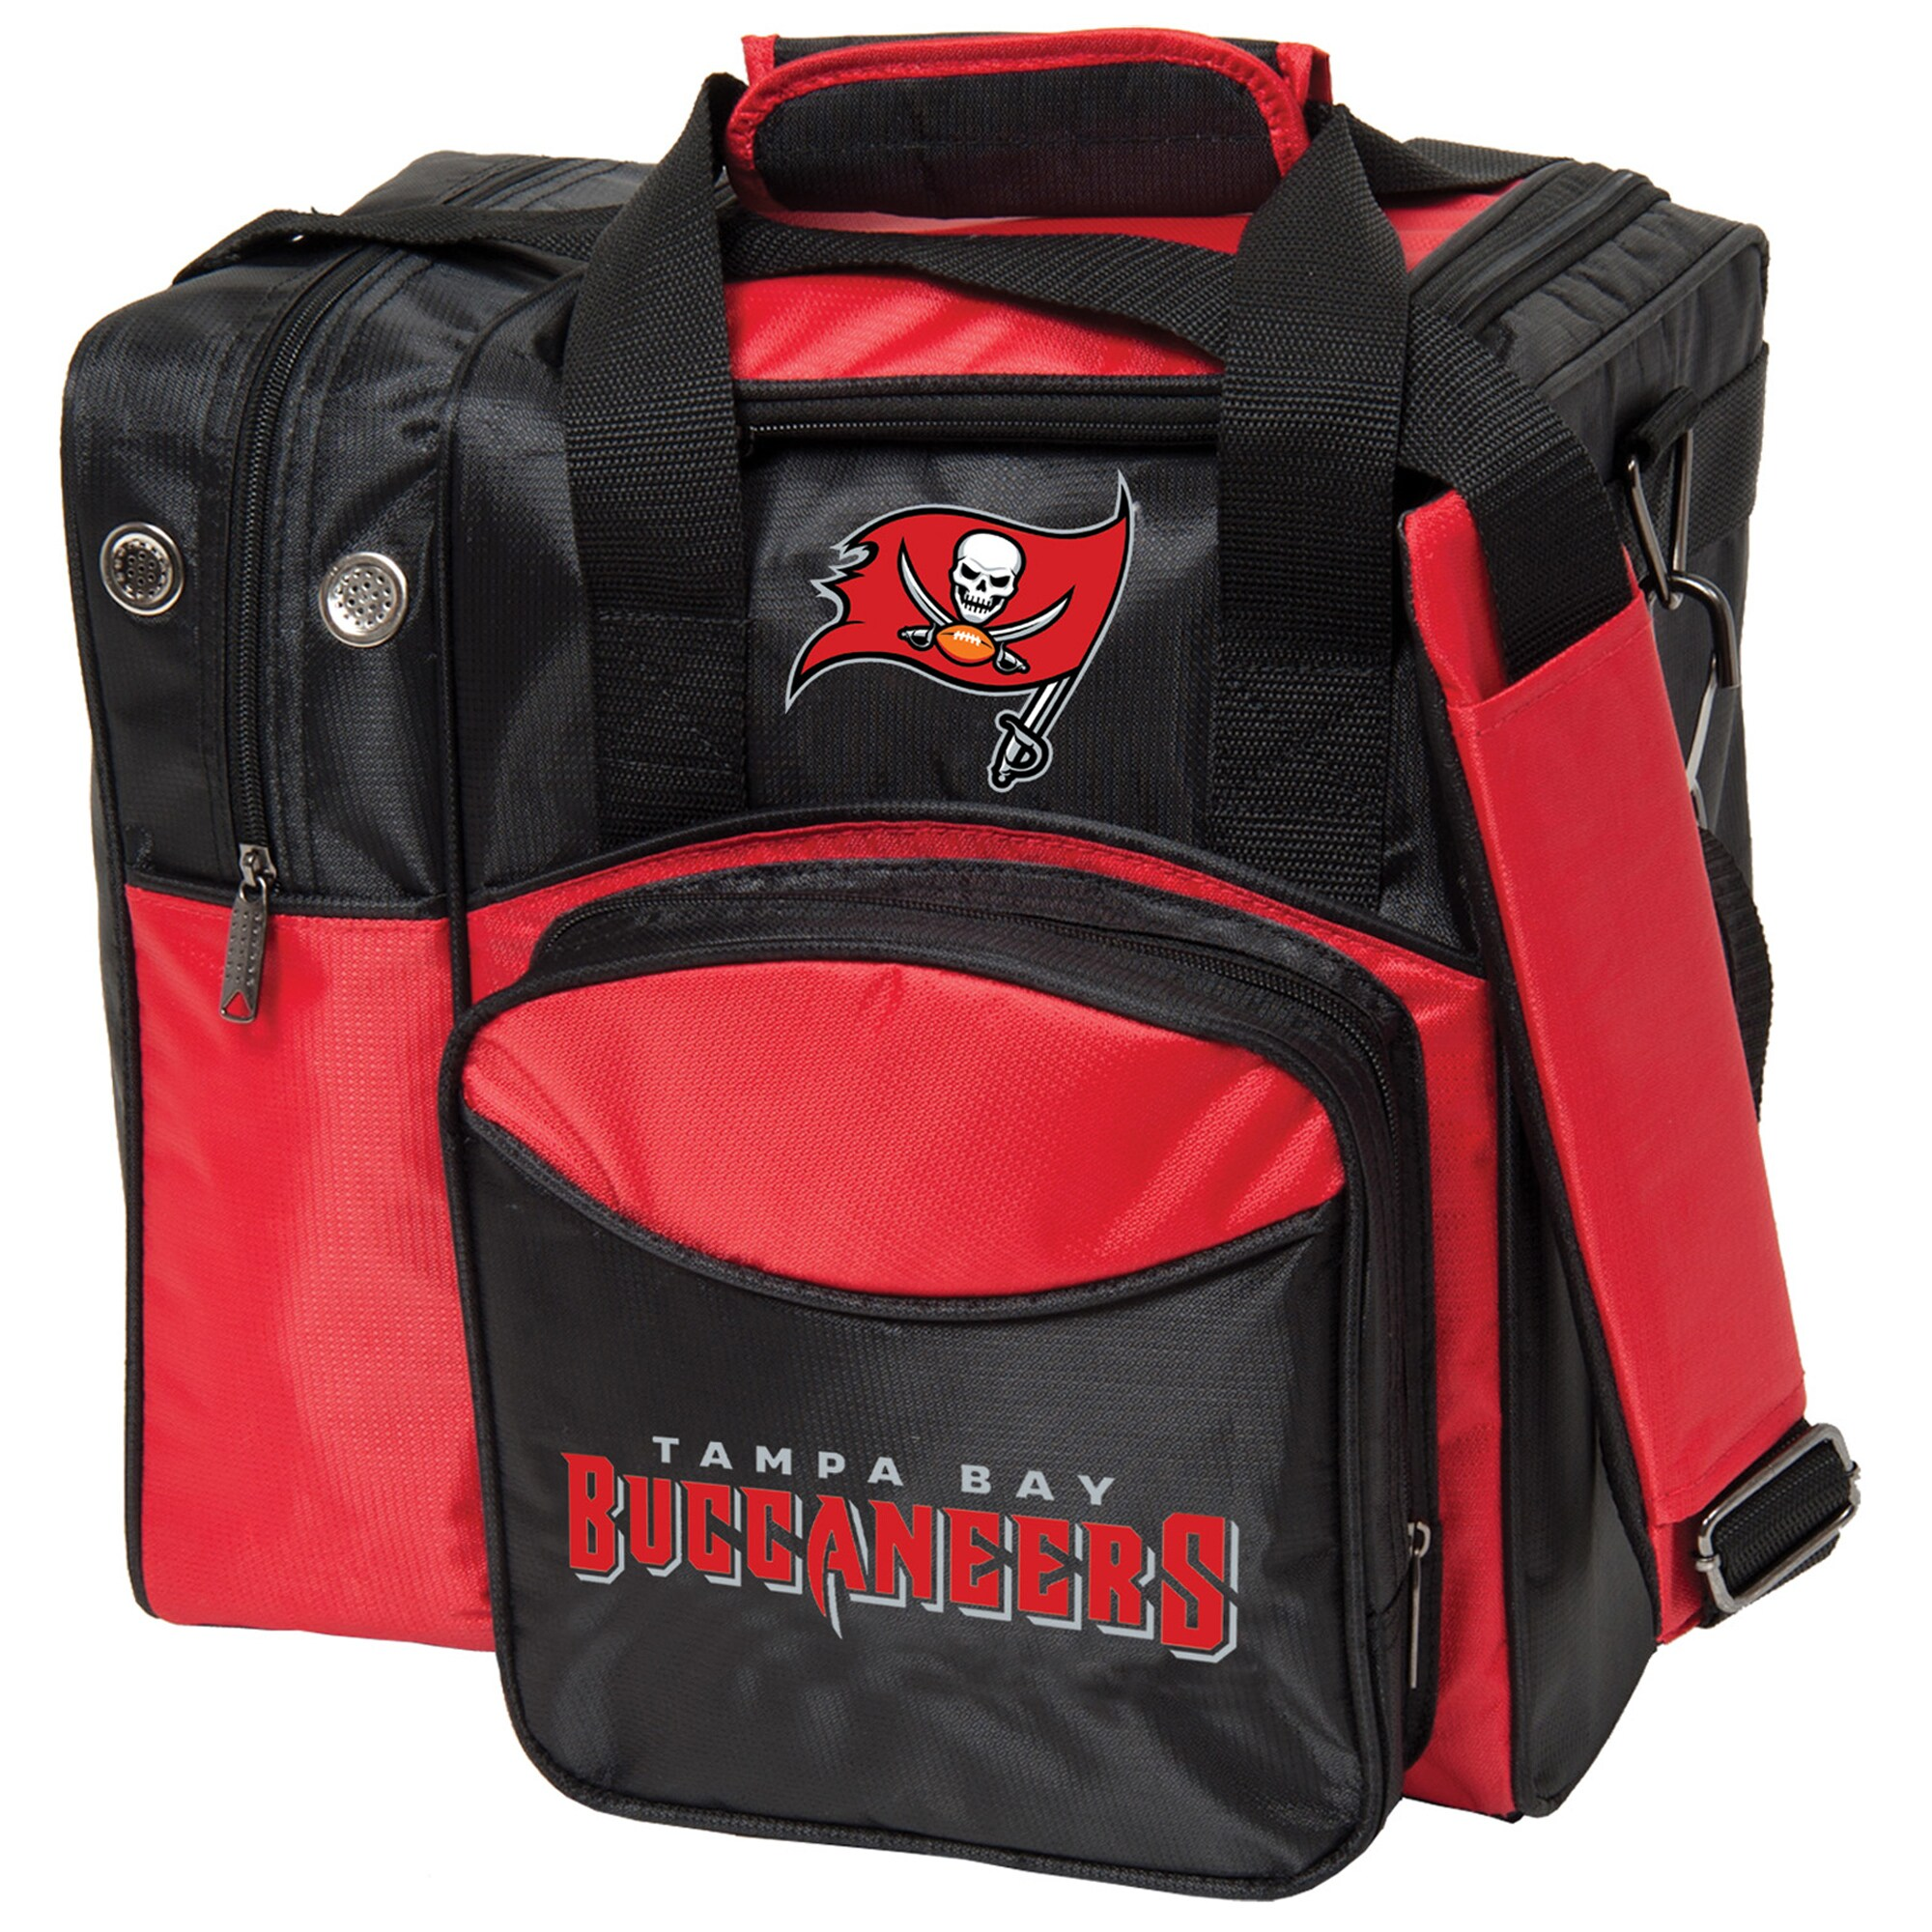 Tampa Bay Buccaneers Single Ball Bowling Tote